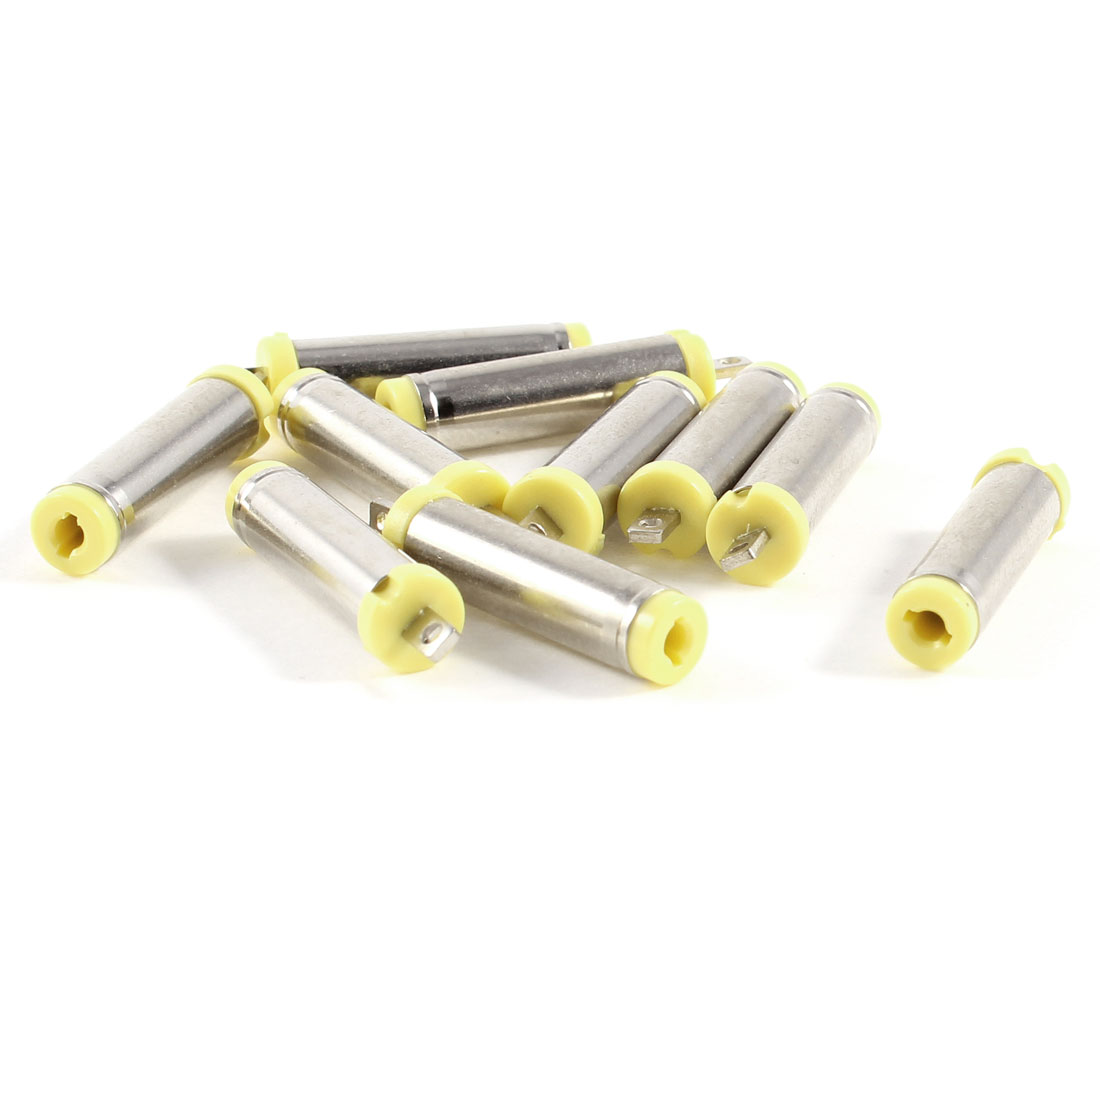 10 Pcs 4.8mm x 1.7mm x 22mm Soldering Male DC Power Jack Connector